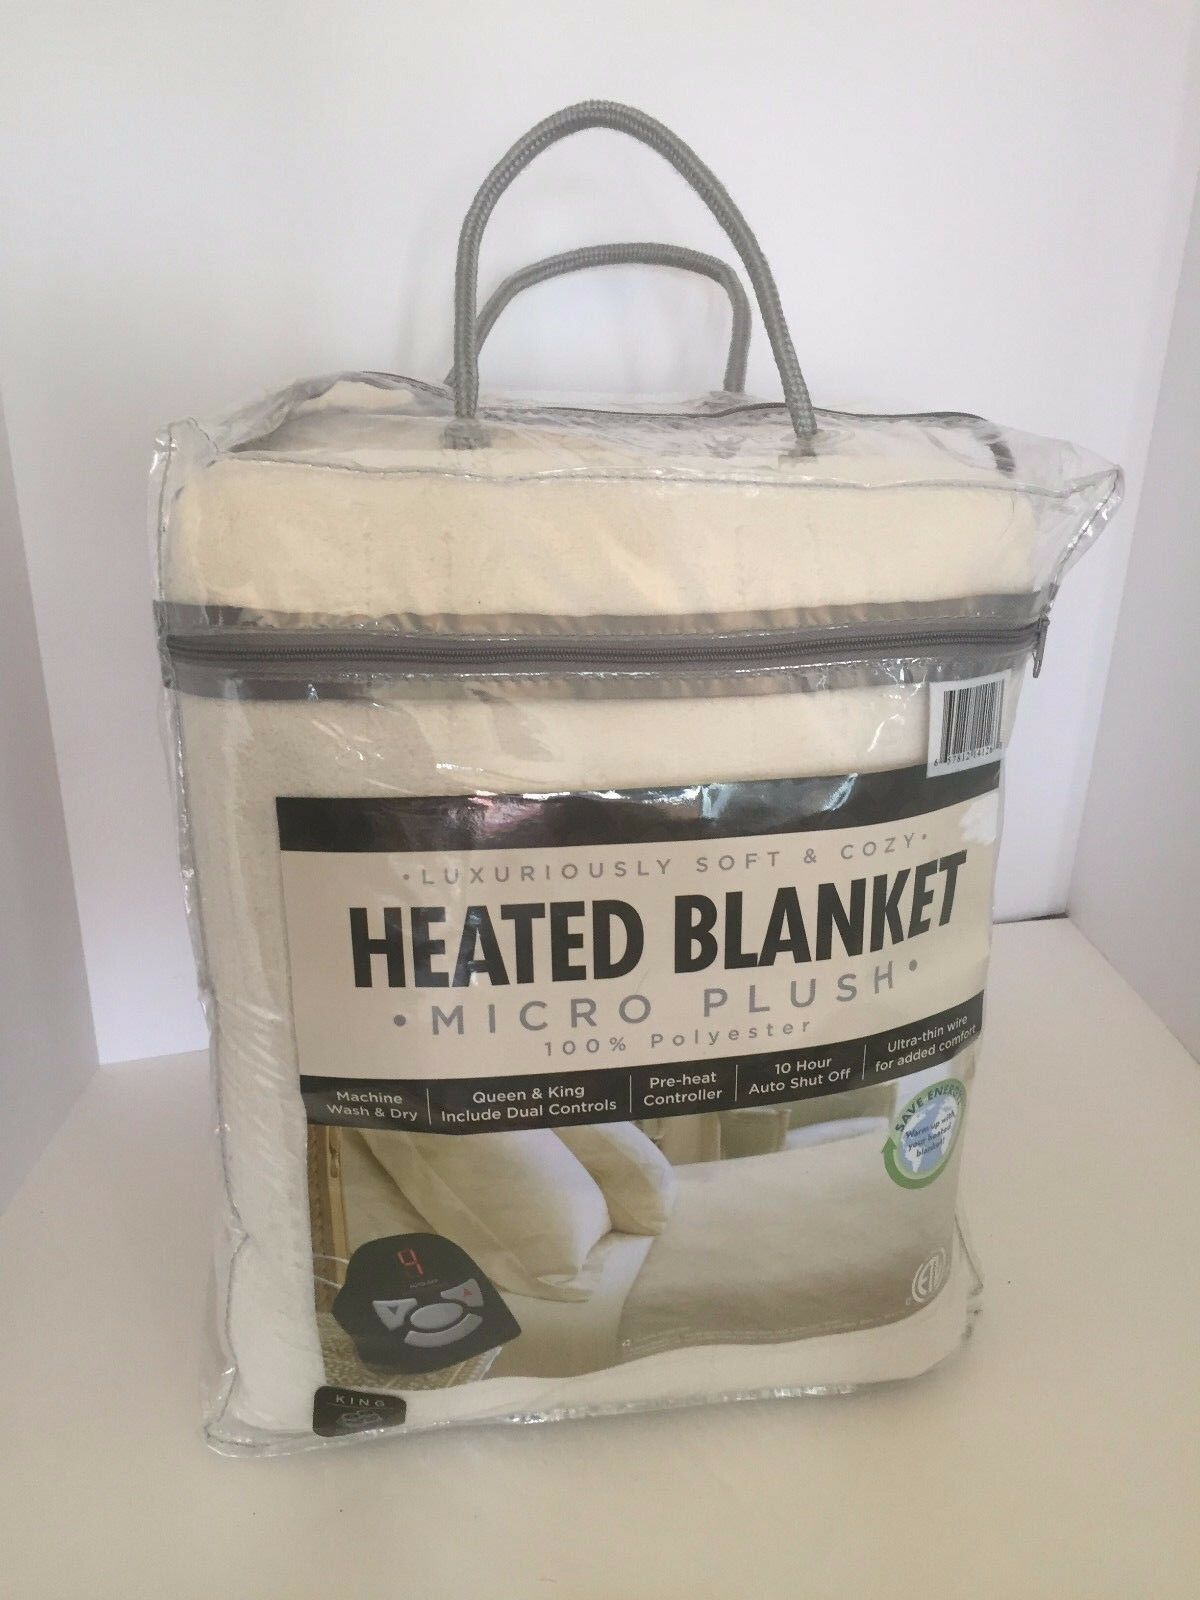 Biddeford Micro Plush Heated Blanket Polyester KIng KIng KIng 100  x 90  Ivory OBD04 NEW 7716dd